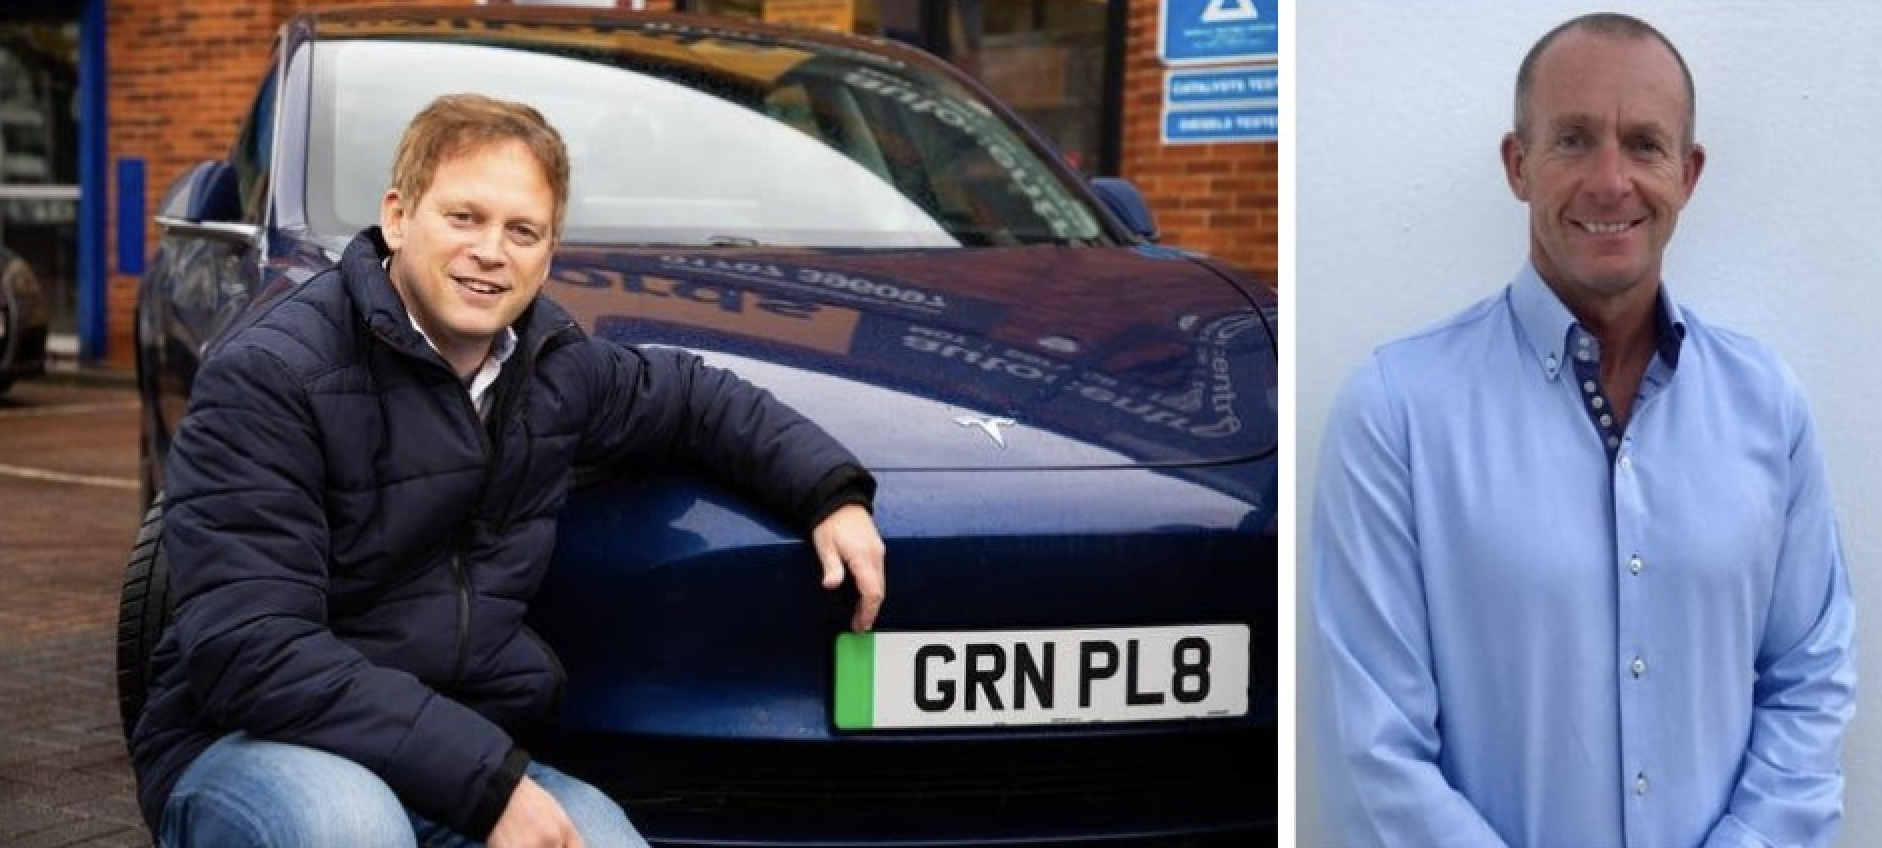 'Cars Could All Be Fully Electric By 2025 If Government Embraces Personalisation Of Green Plates' - CarReg.co.uk Boss